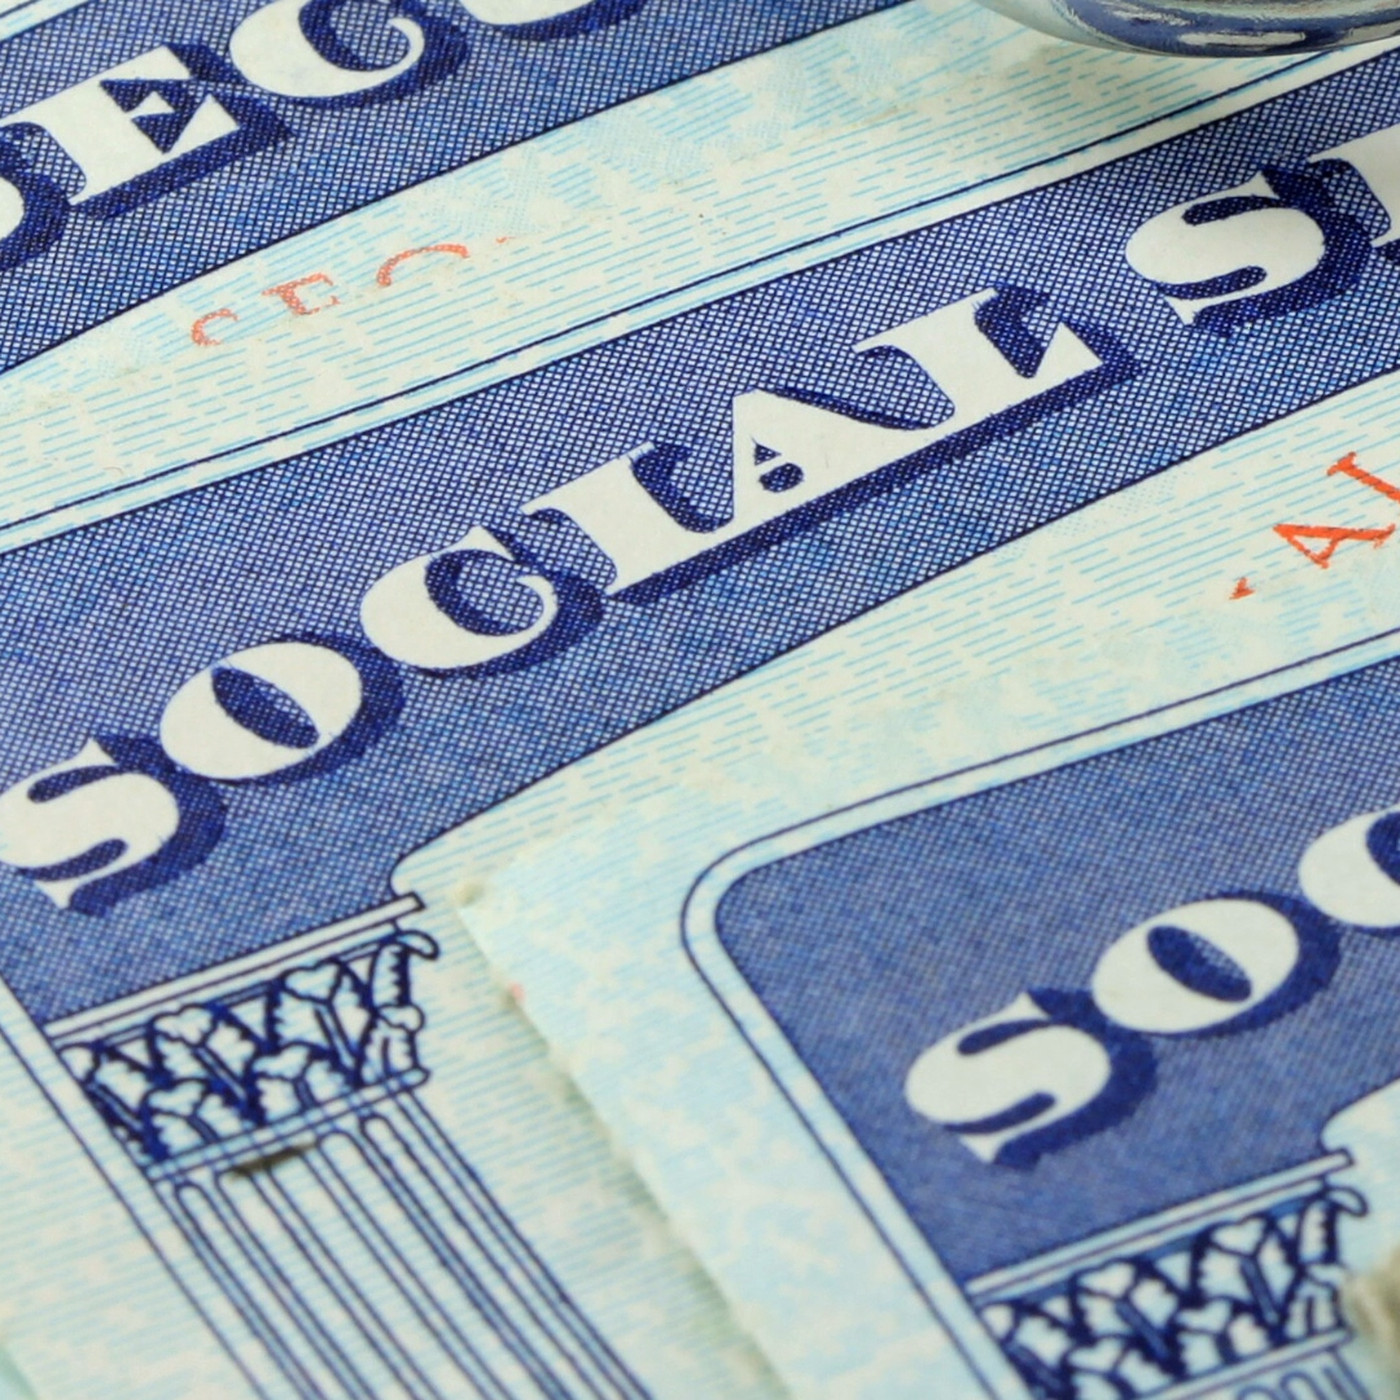 What does your Social Security Number have in common with